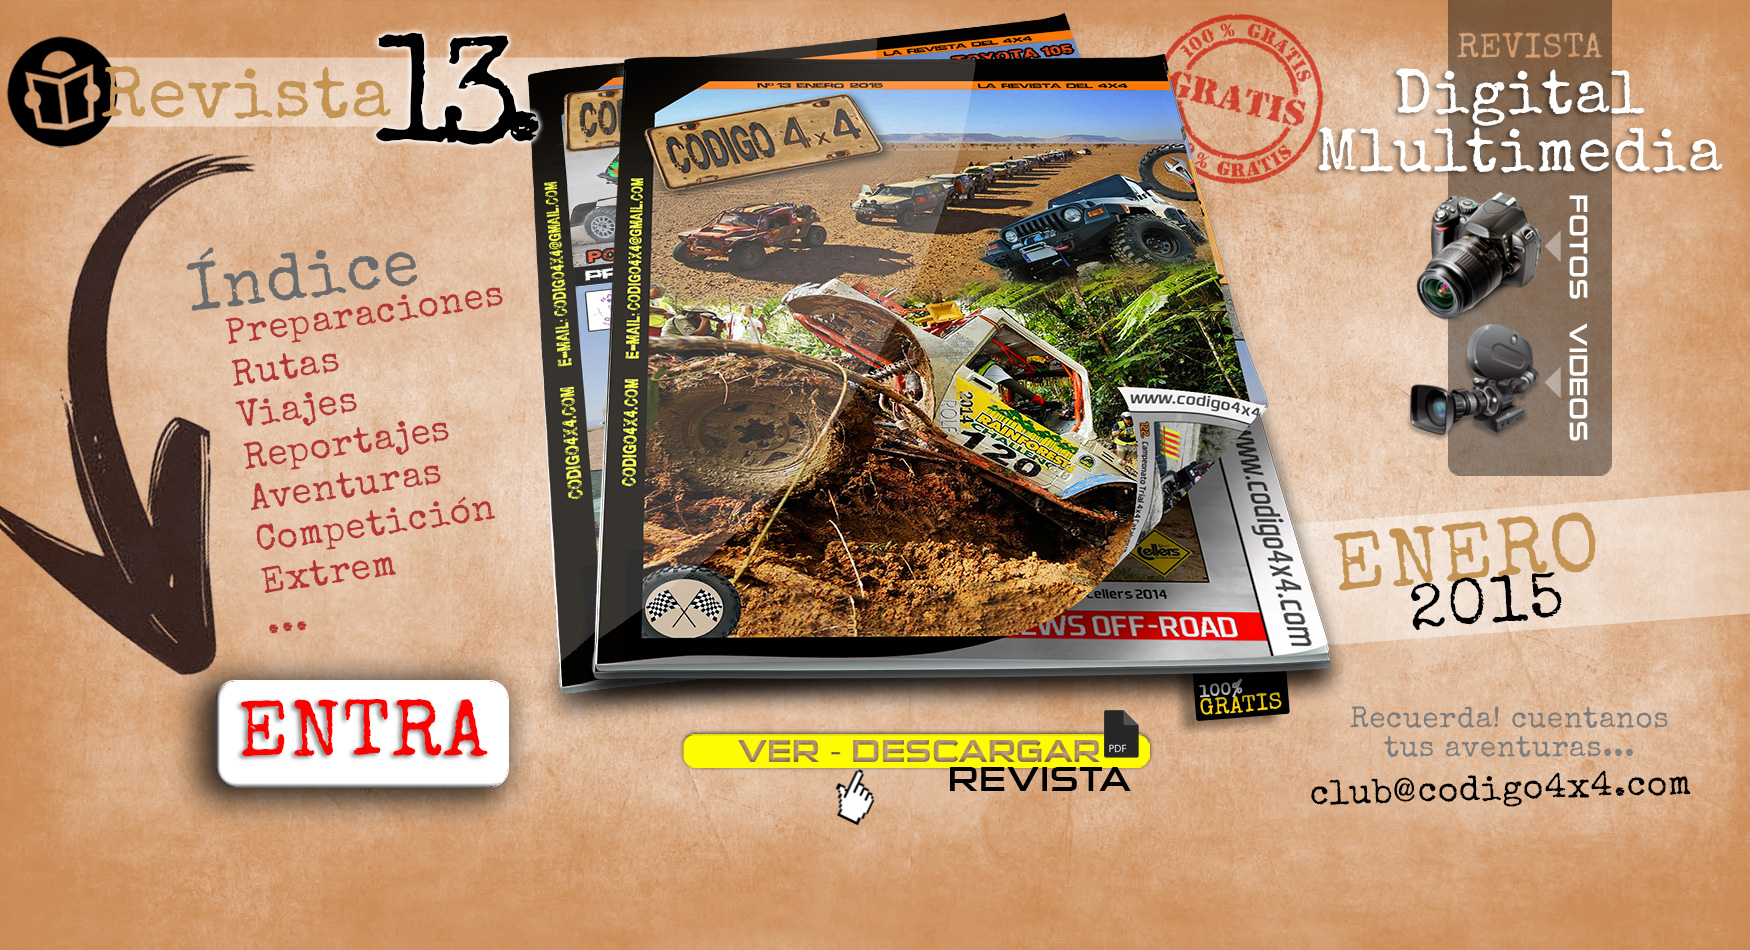 Marketing Off-Road en contraportada de revista codigo4x4.com